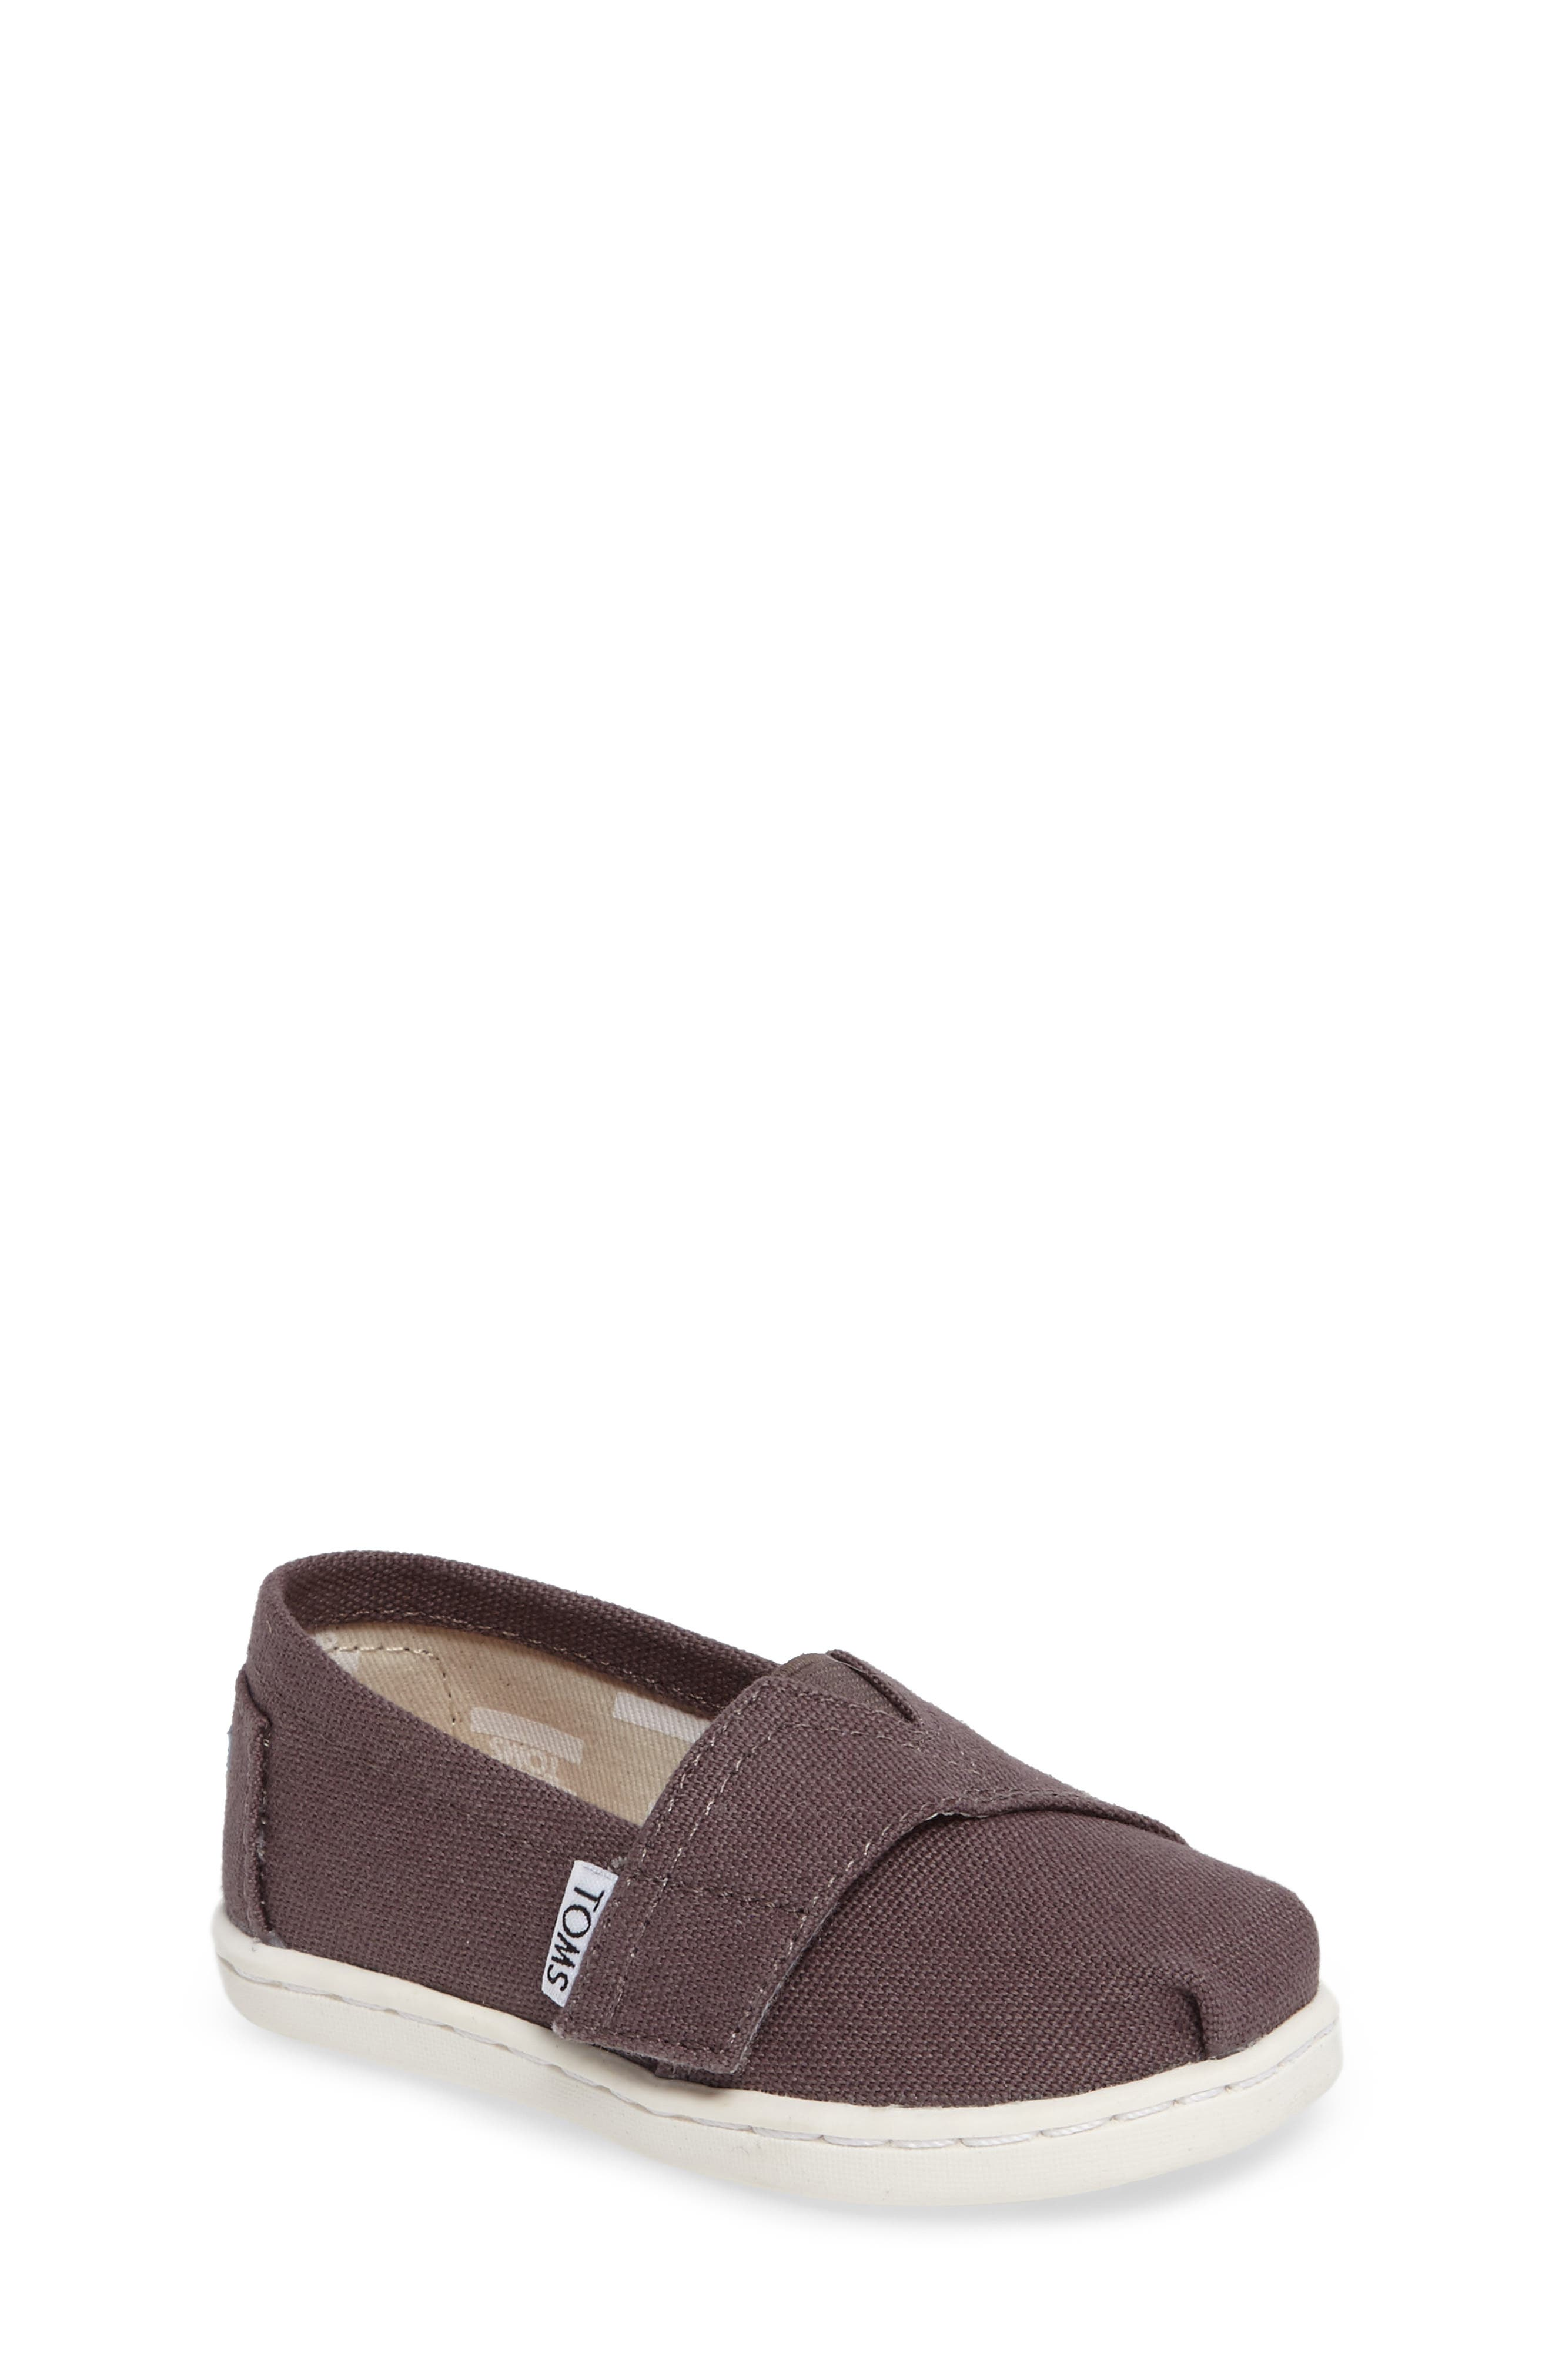 TOMS 2.0 Alpargata Slip-On (Baby, Walker & Toddler)